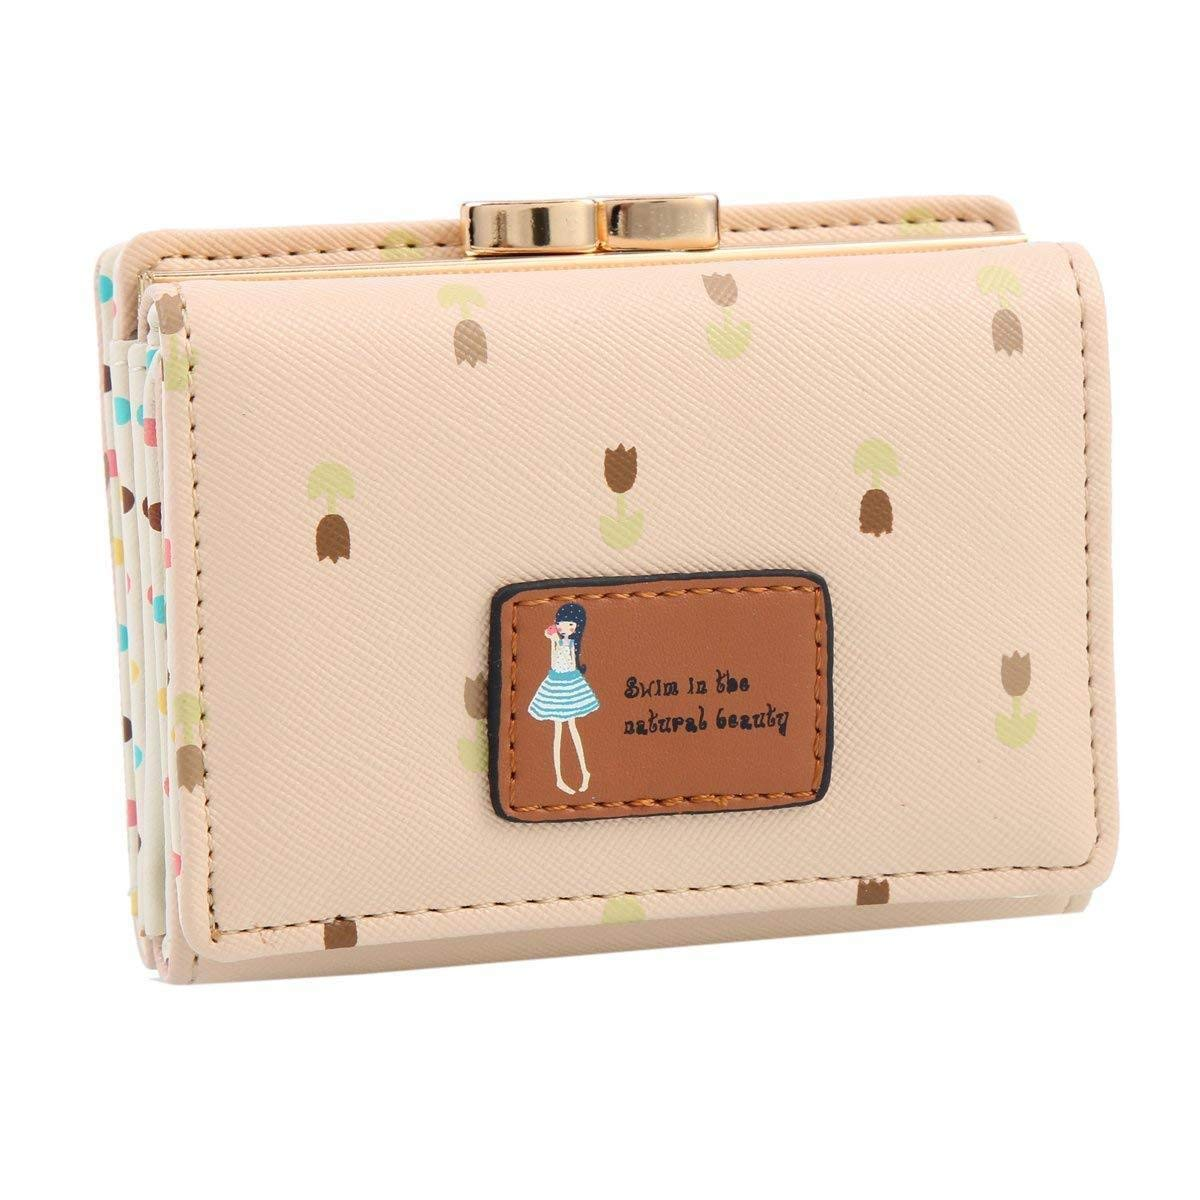 moca s cute (lil tulip s) portable short handy womens wallet small clutch  wallet hand purse ... dea59219ecf27